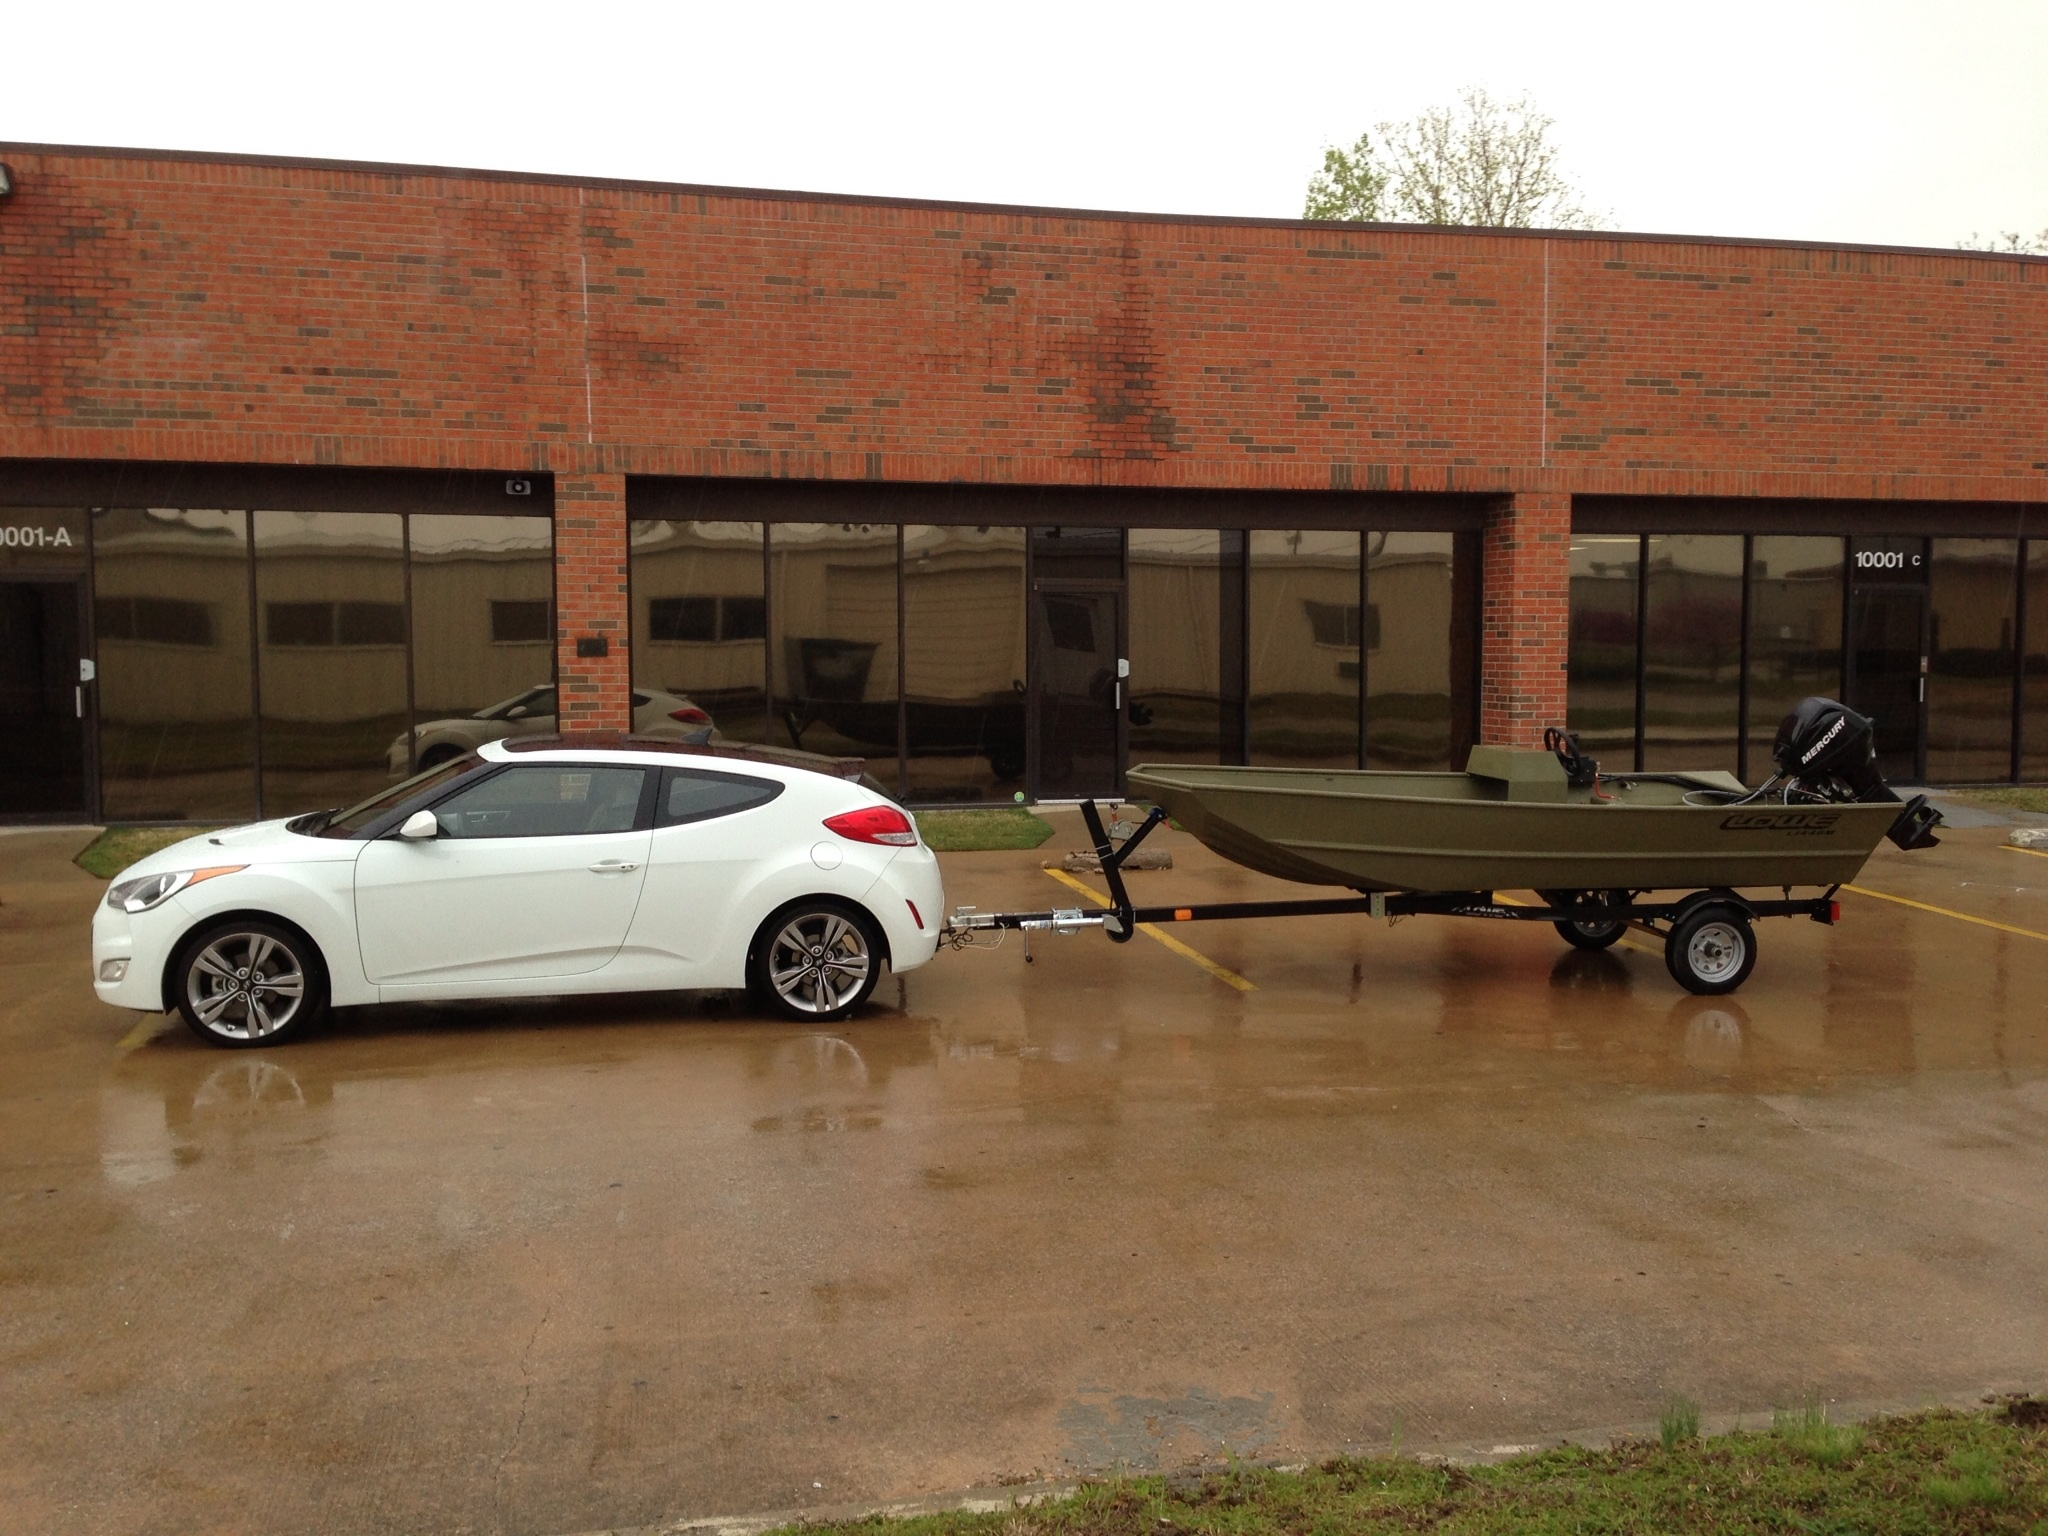 13754d1365901895 veloster tow vehicle image veloster as a tow vehicle?? Wiring Harness Hyundai Genesis at mifinder.co